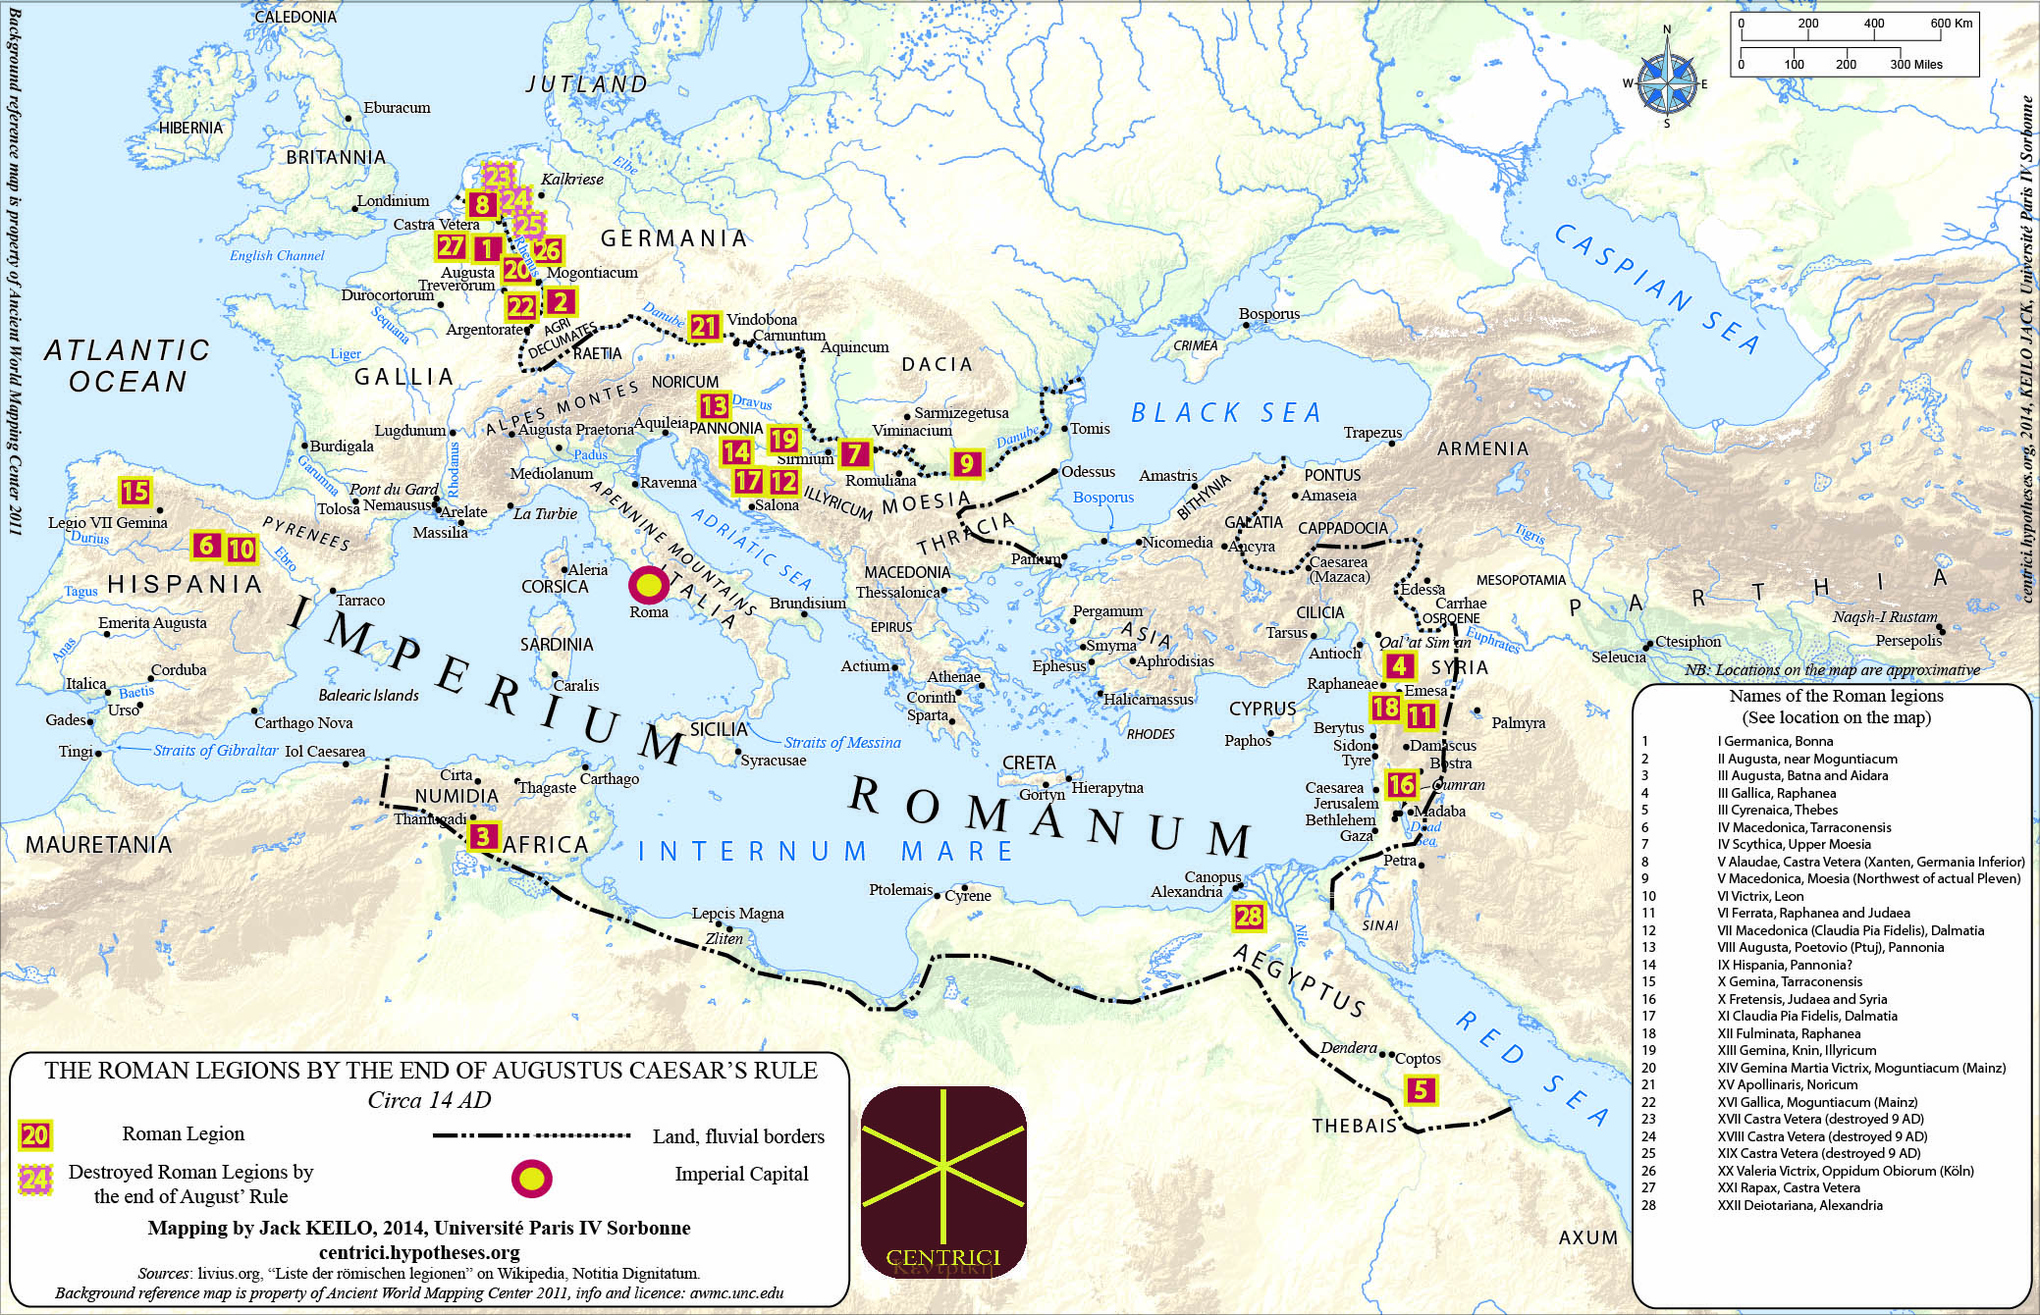 Worksheet. 40 maps that explain the Roman Empire  Vox